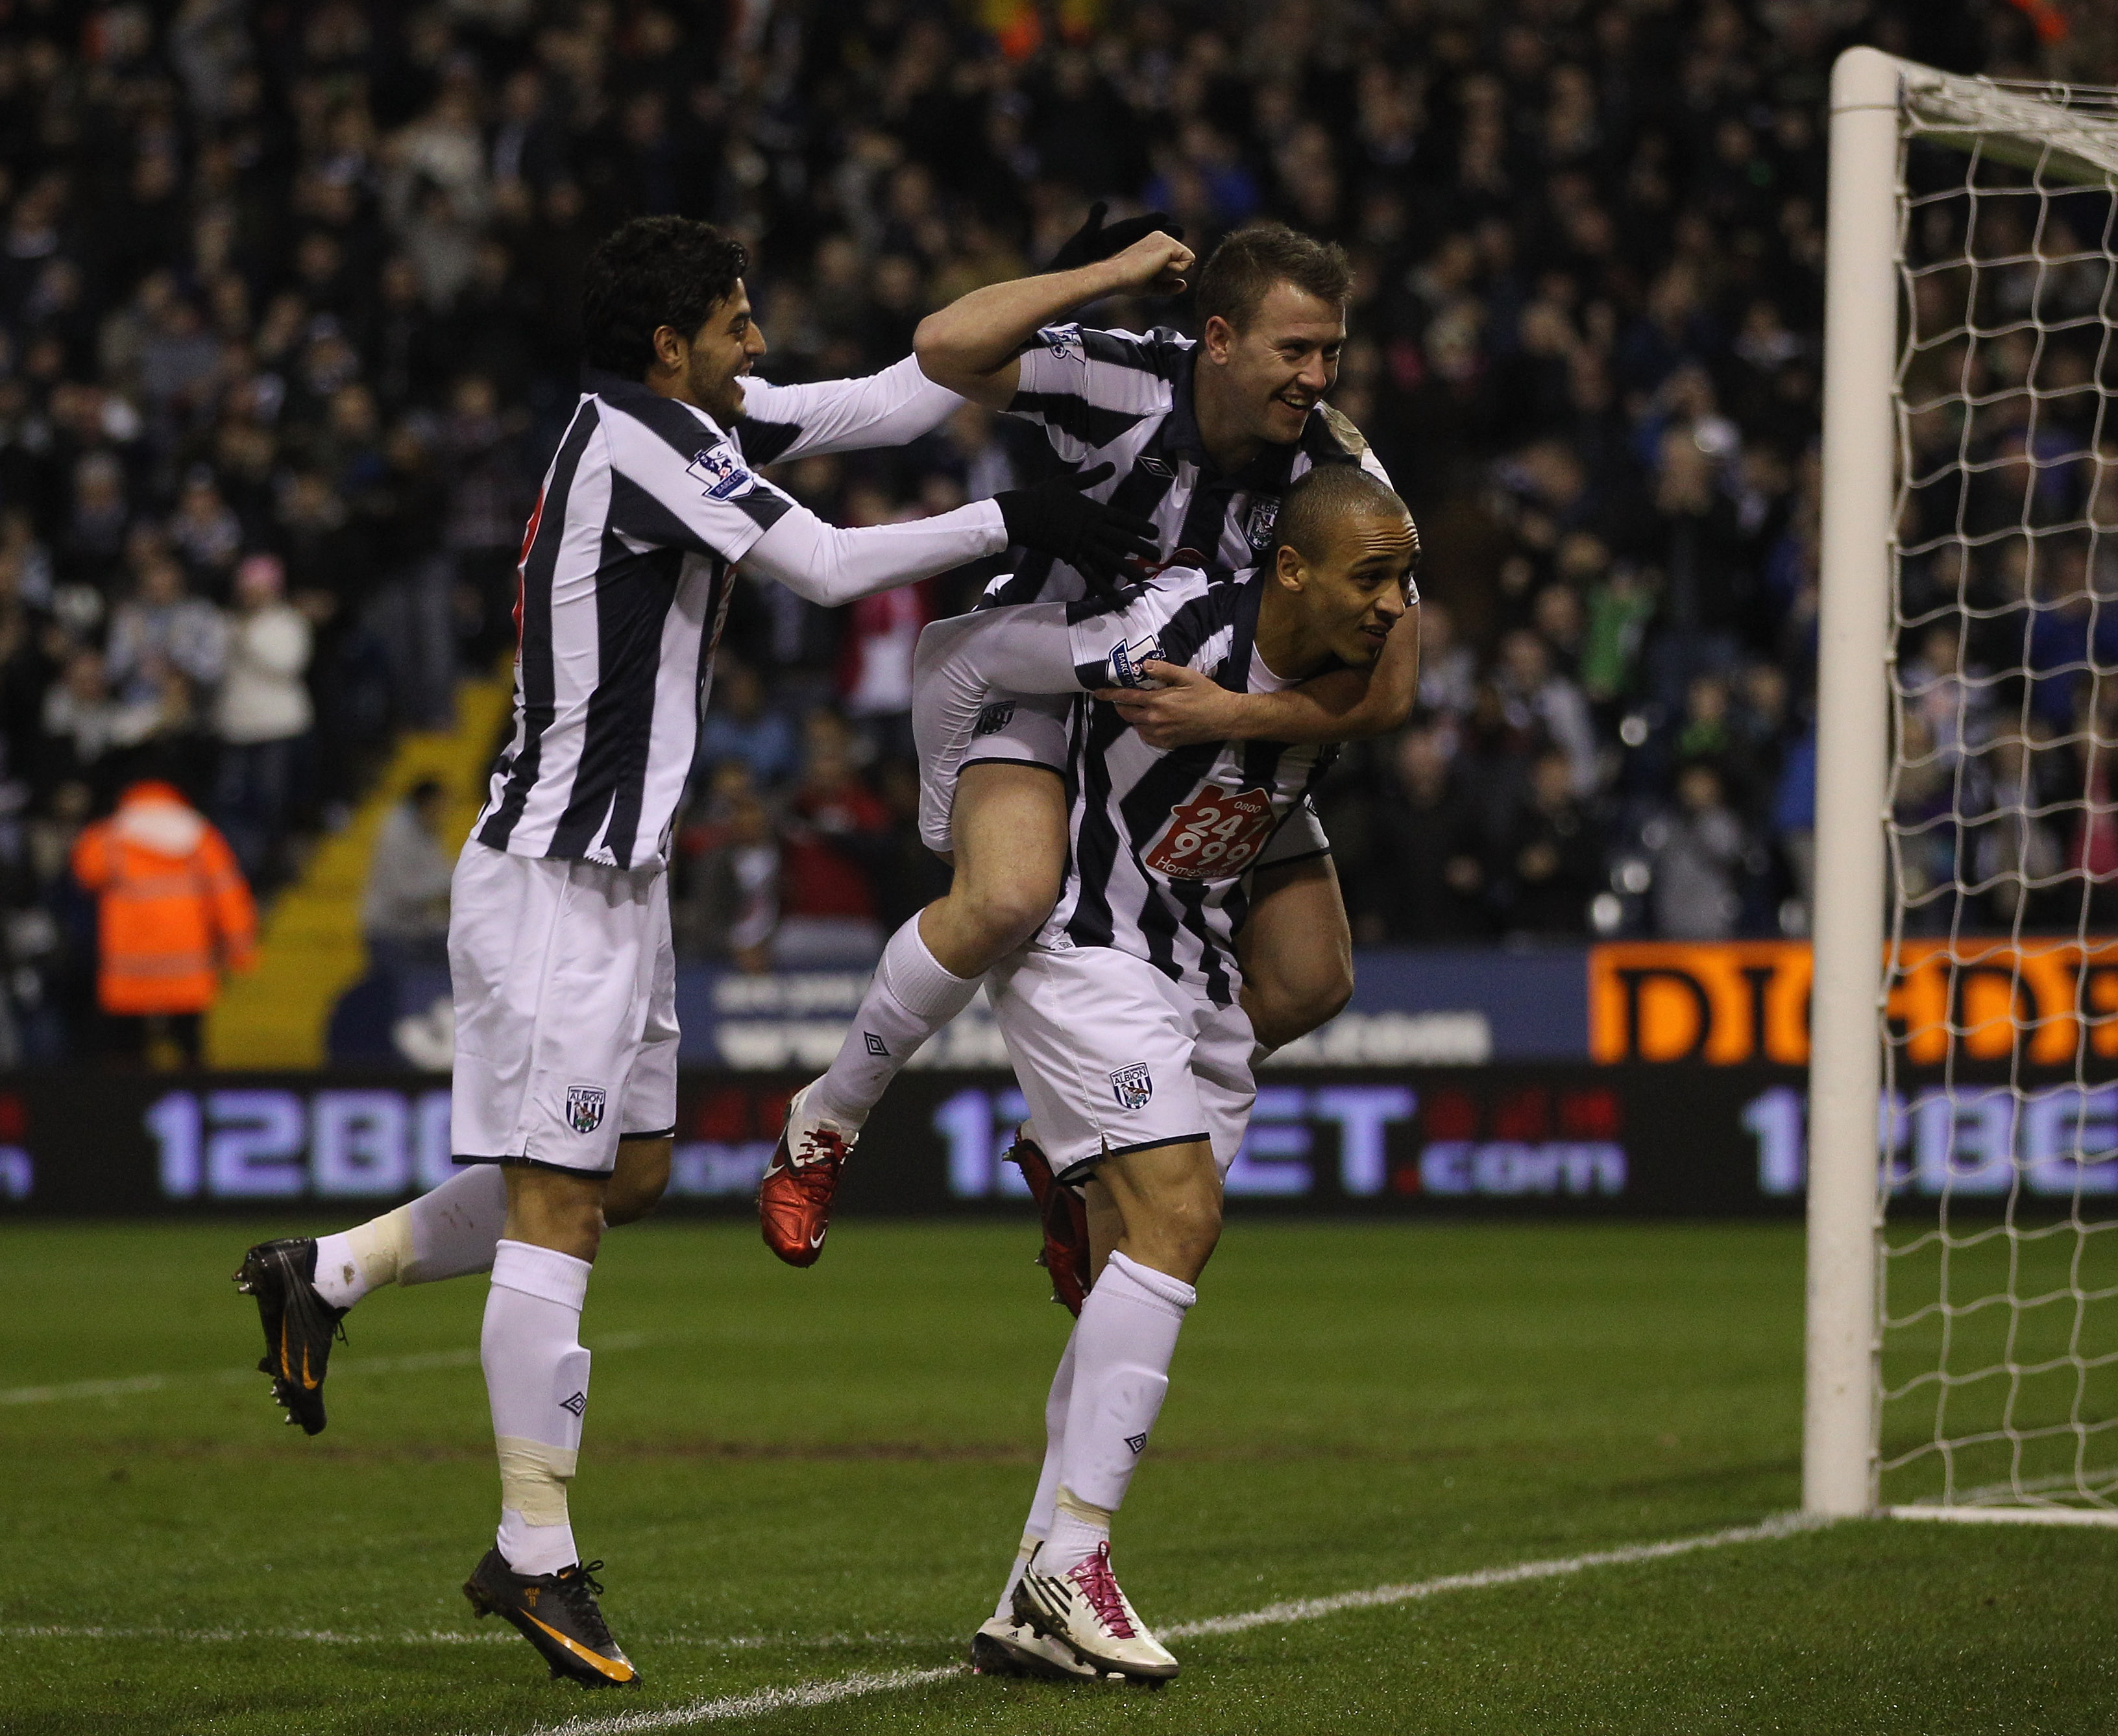 WEST BROMWICH, ENGLAND - FEBRUARY 01:  Peter Odemwingie of West Brom celebrates scoring the first goal during the Barclays Premier League match between West Bromwich Albion and Wigan Athletic at The Hawthorns on February 1, 2011 in West Bromwich, England.